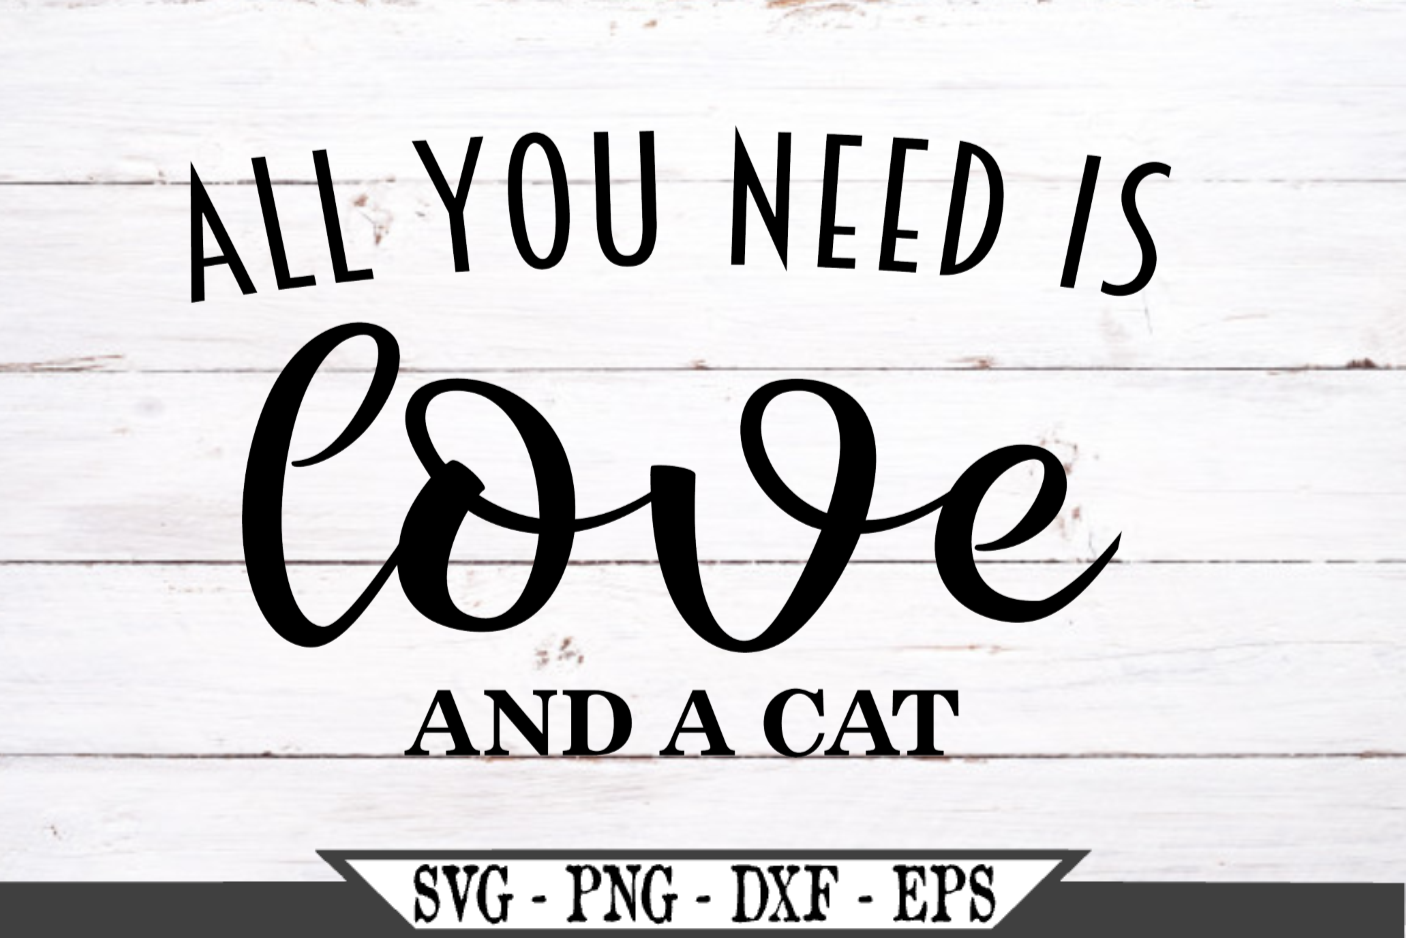 All You Need Is Love And A Cat SVG example image 2